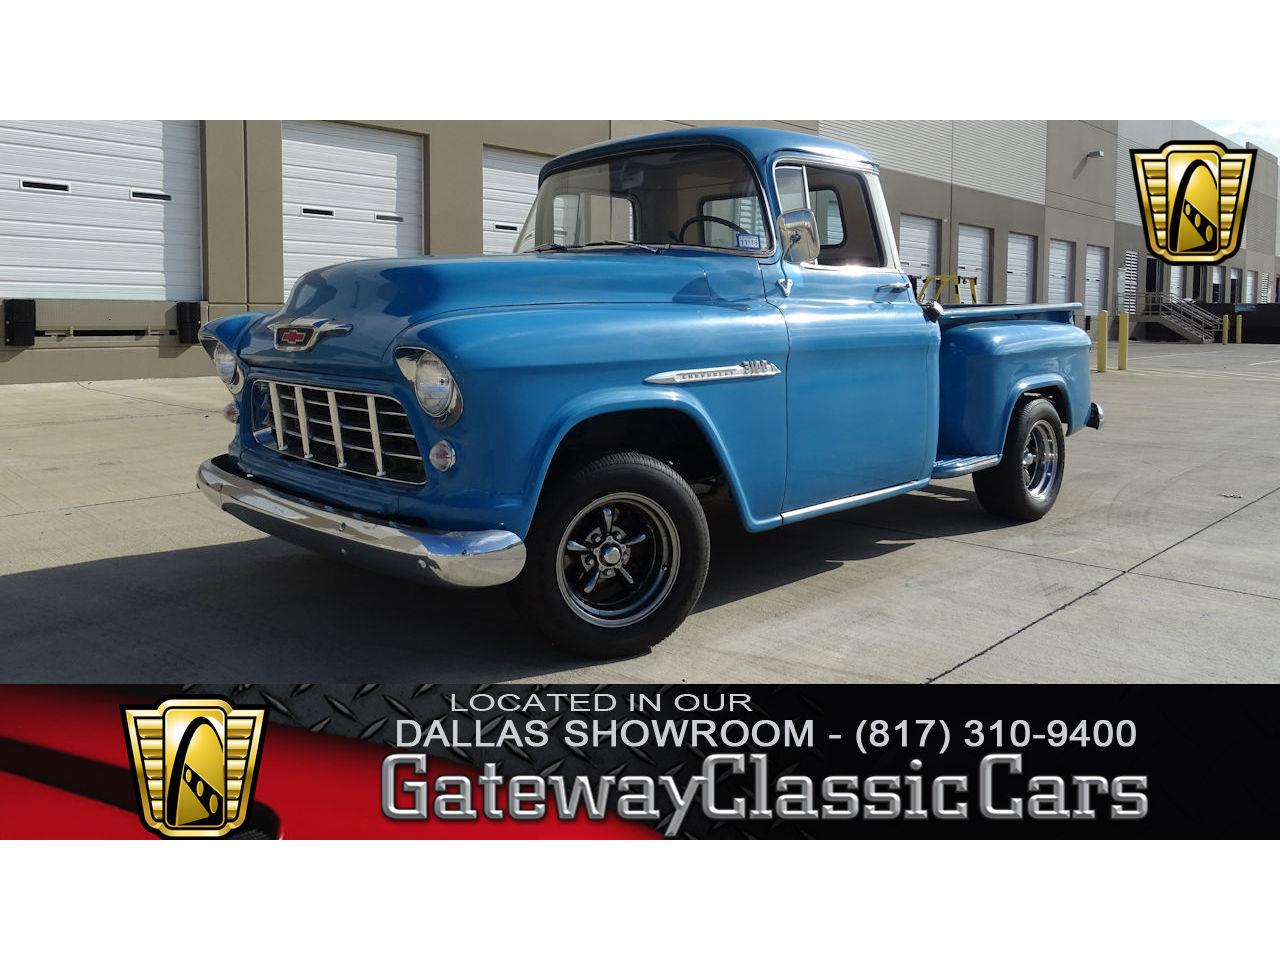 For Sale: 1955 Chevrolet 3100 in DFW Airport, Texas